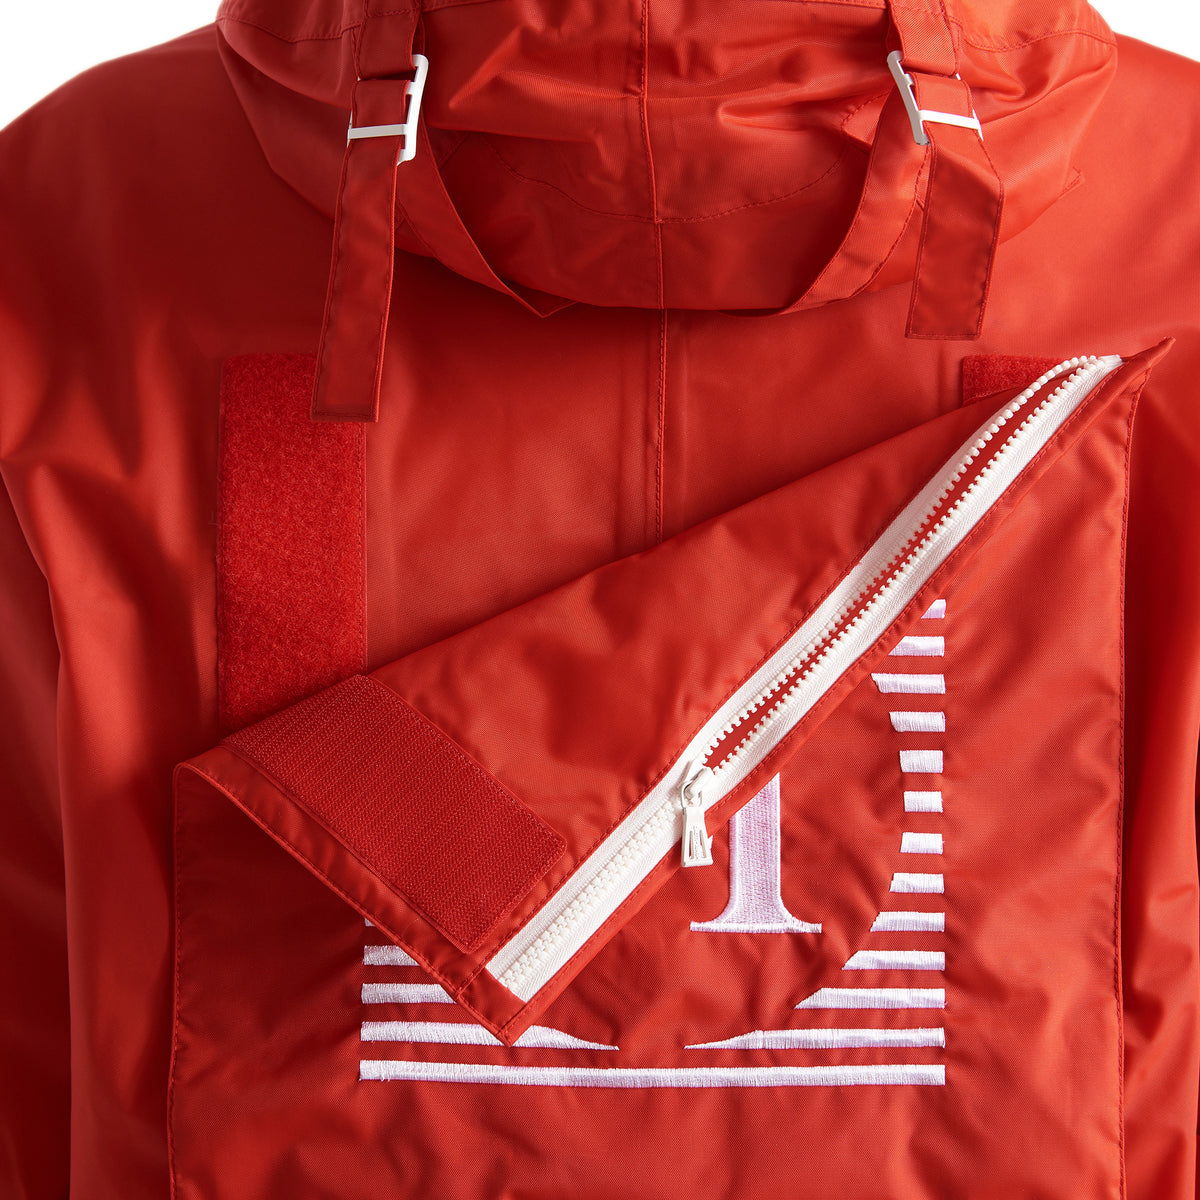 Henri Lloyd X Nigel Cabourn Waterproof Spray Jacket Old Red Velcro Bag